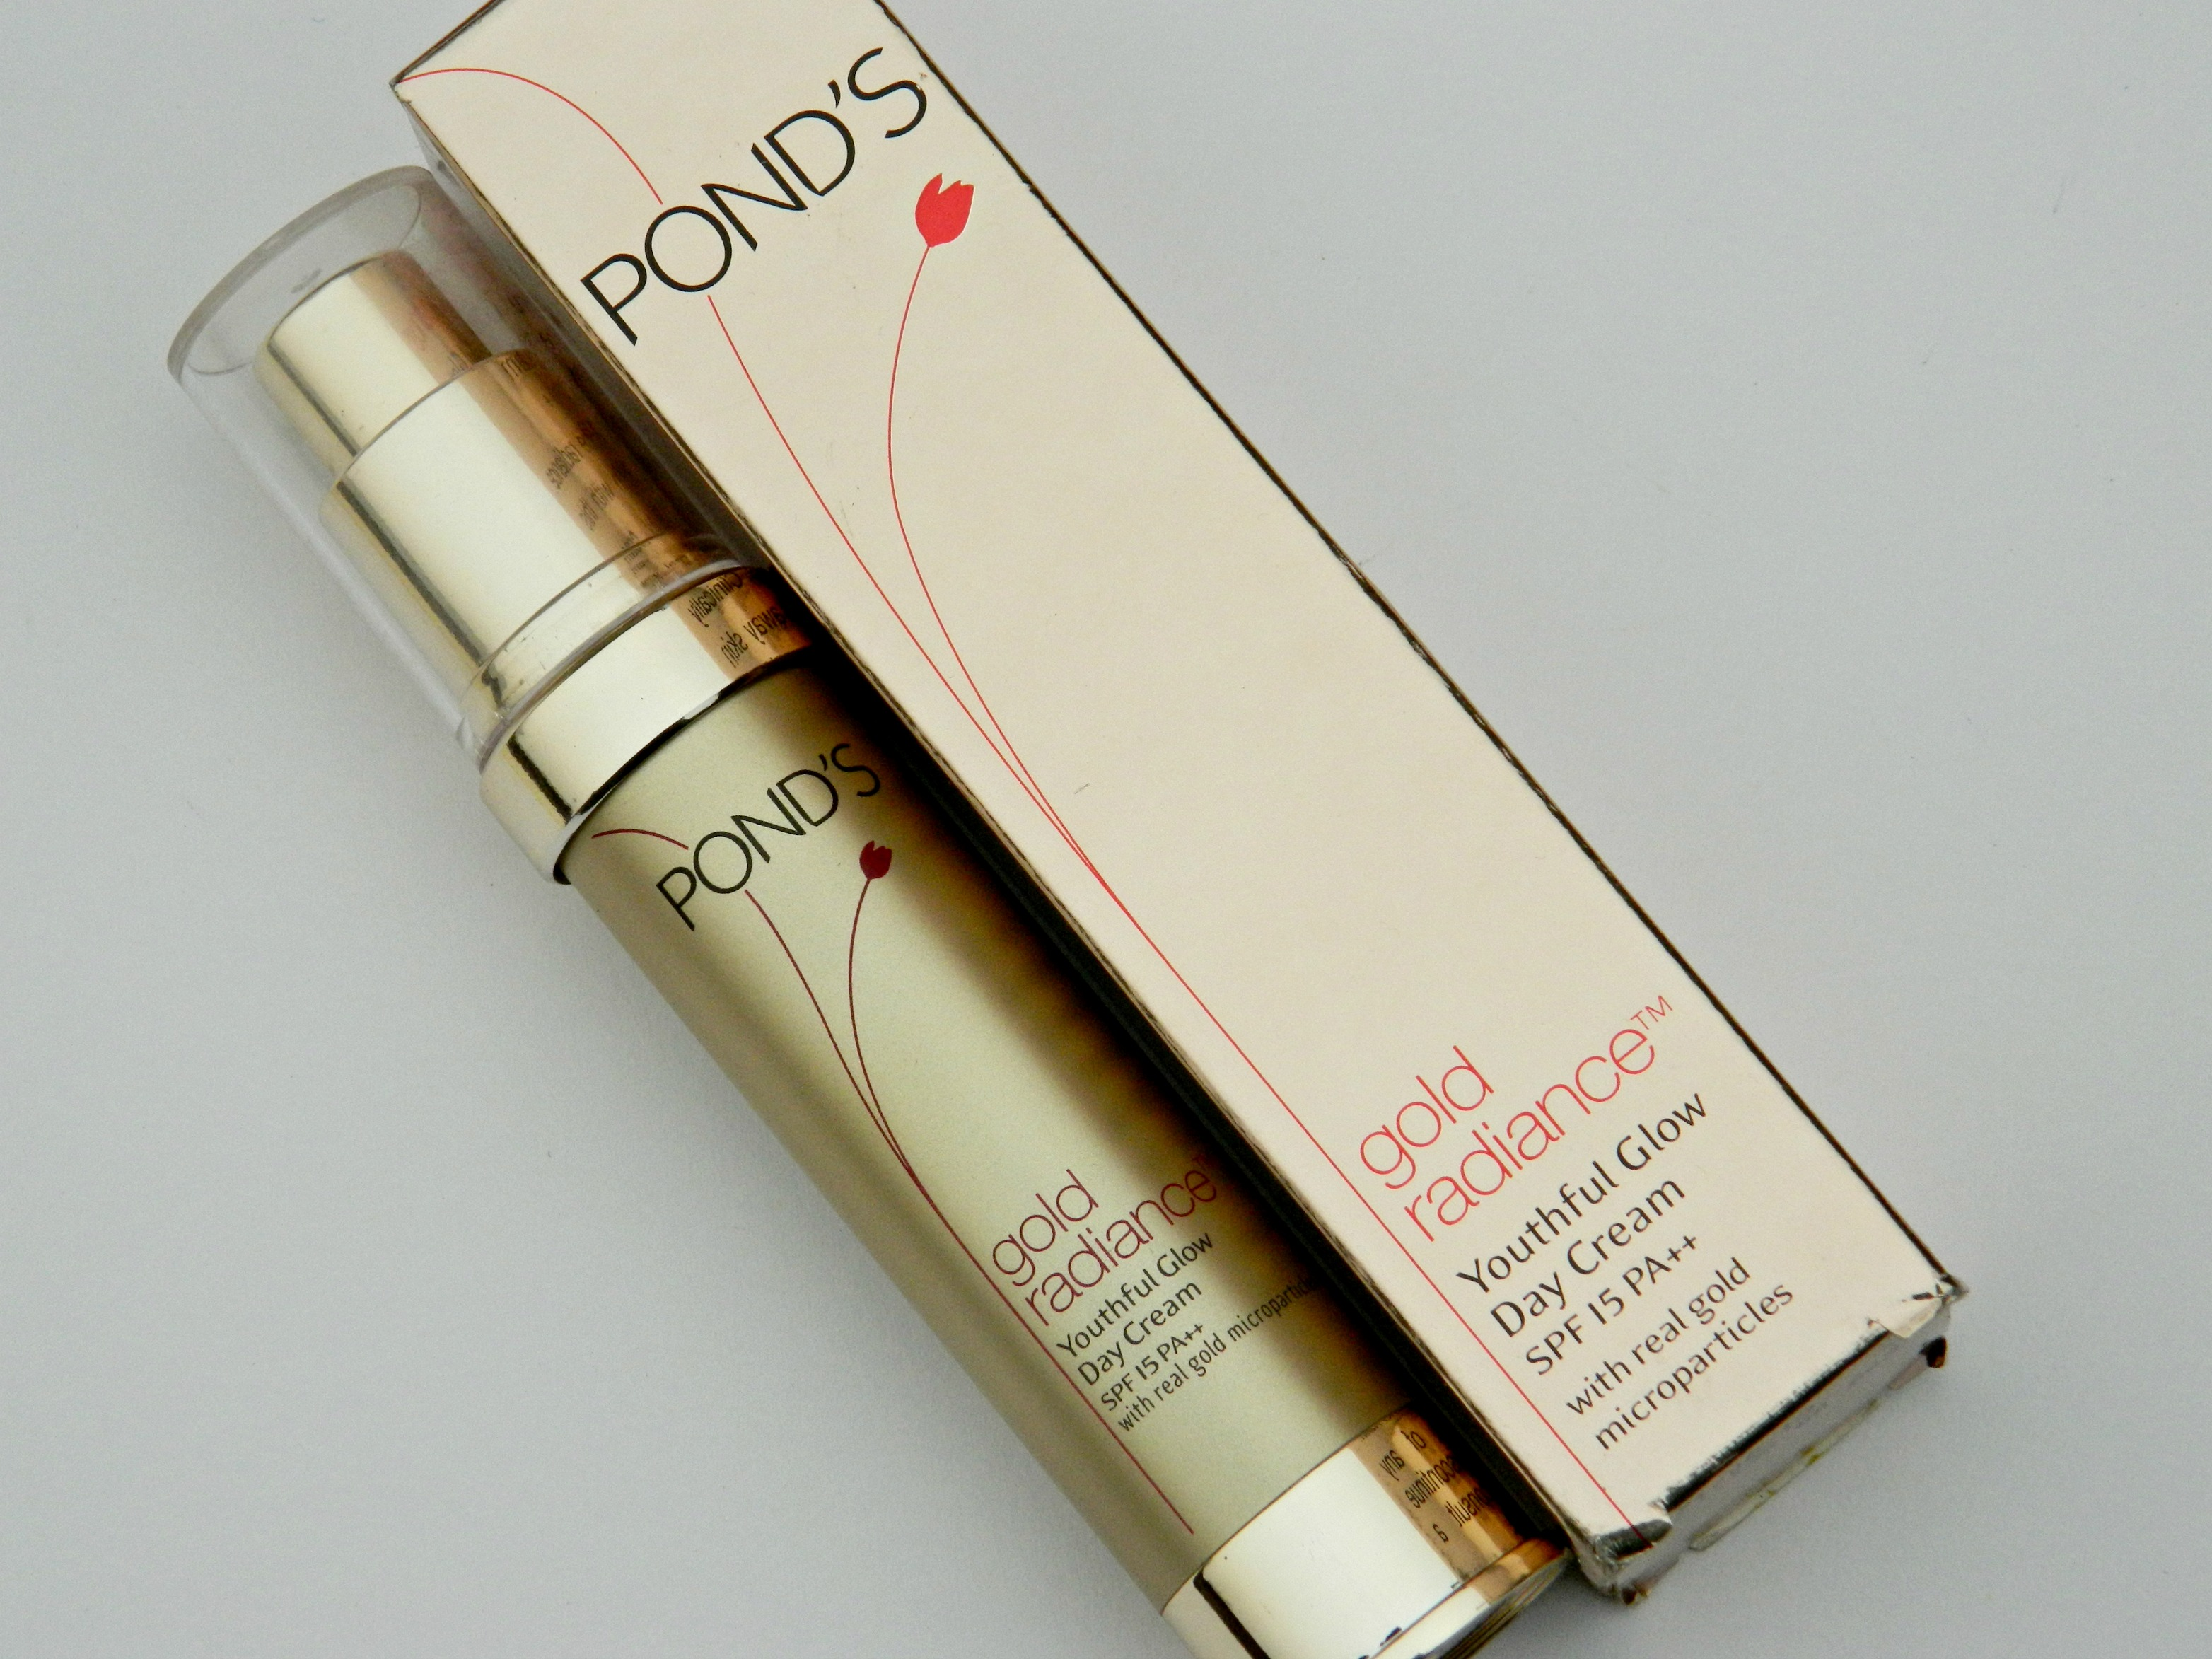 Ponds Gold Radiance Anti Ageing Skin Care Image